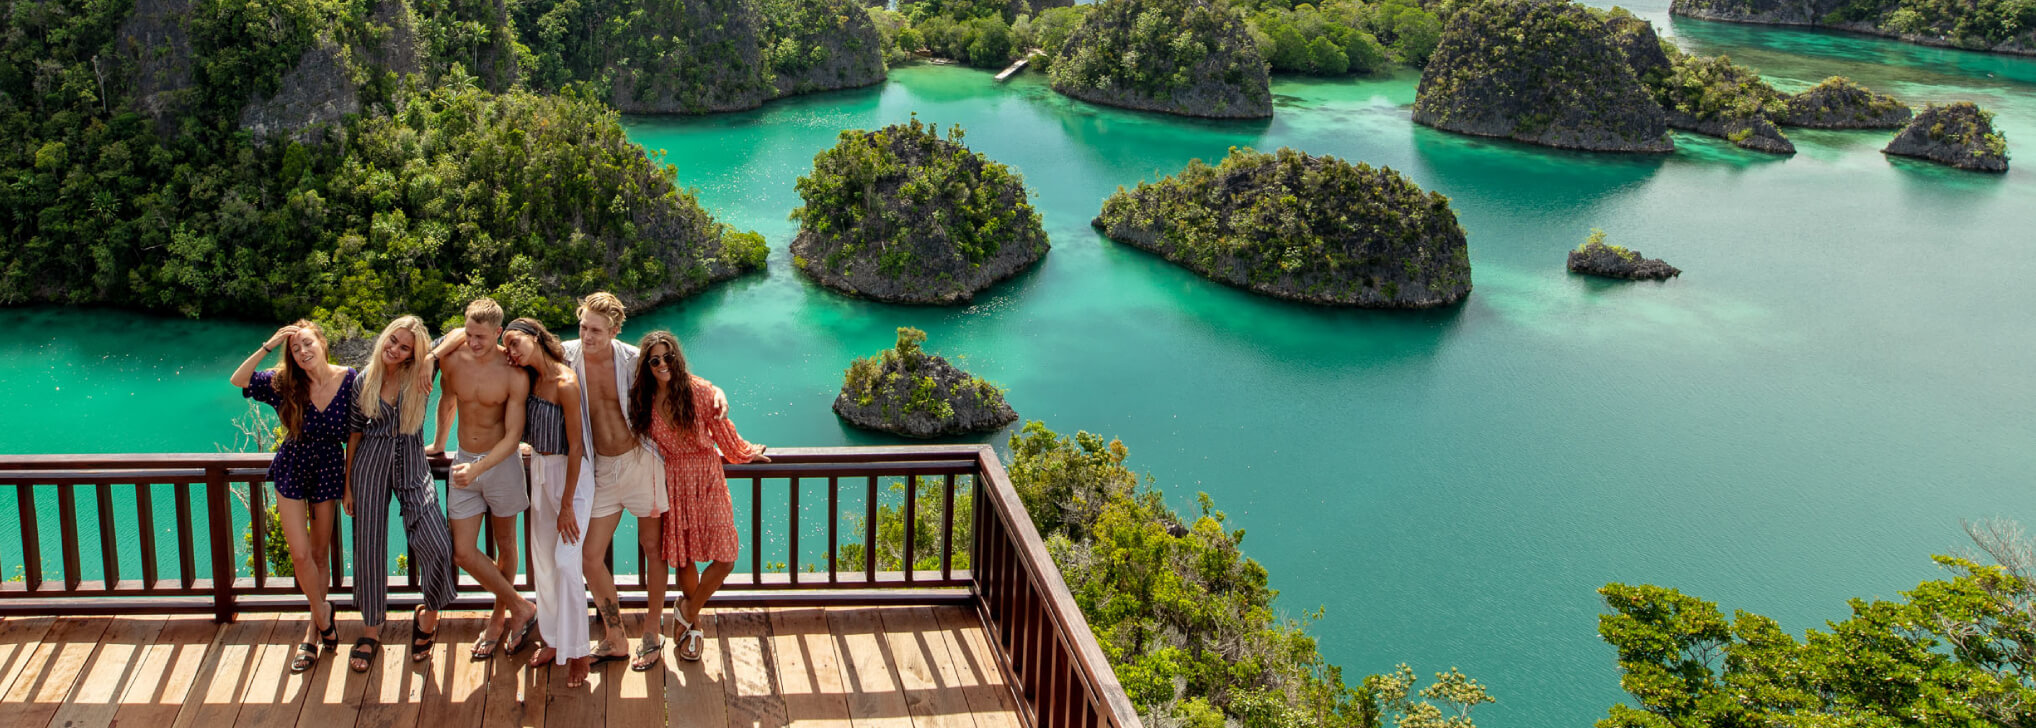 How tourism is helping marine conservation in Raja Ampat